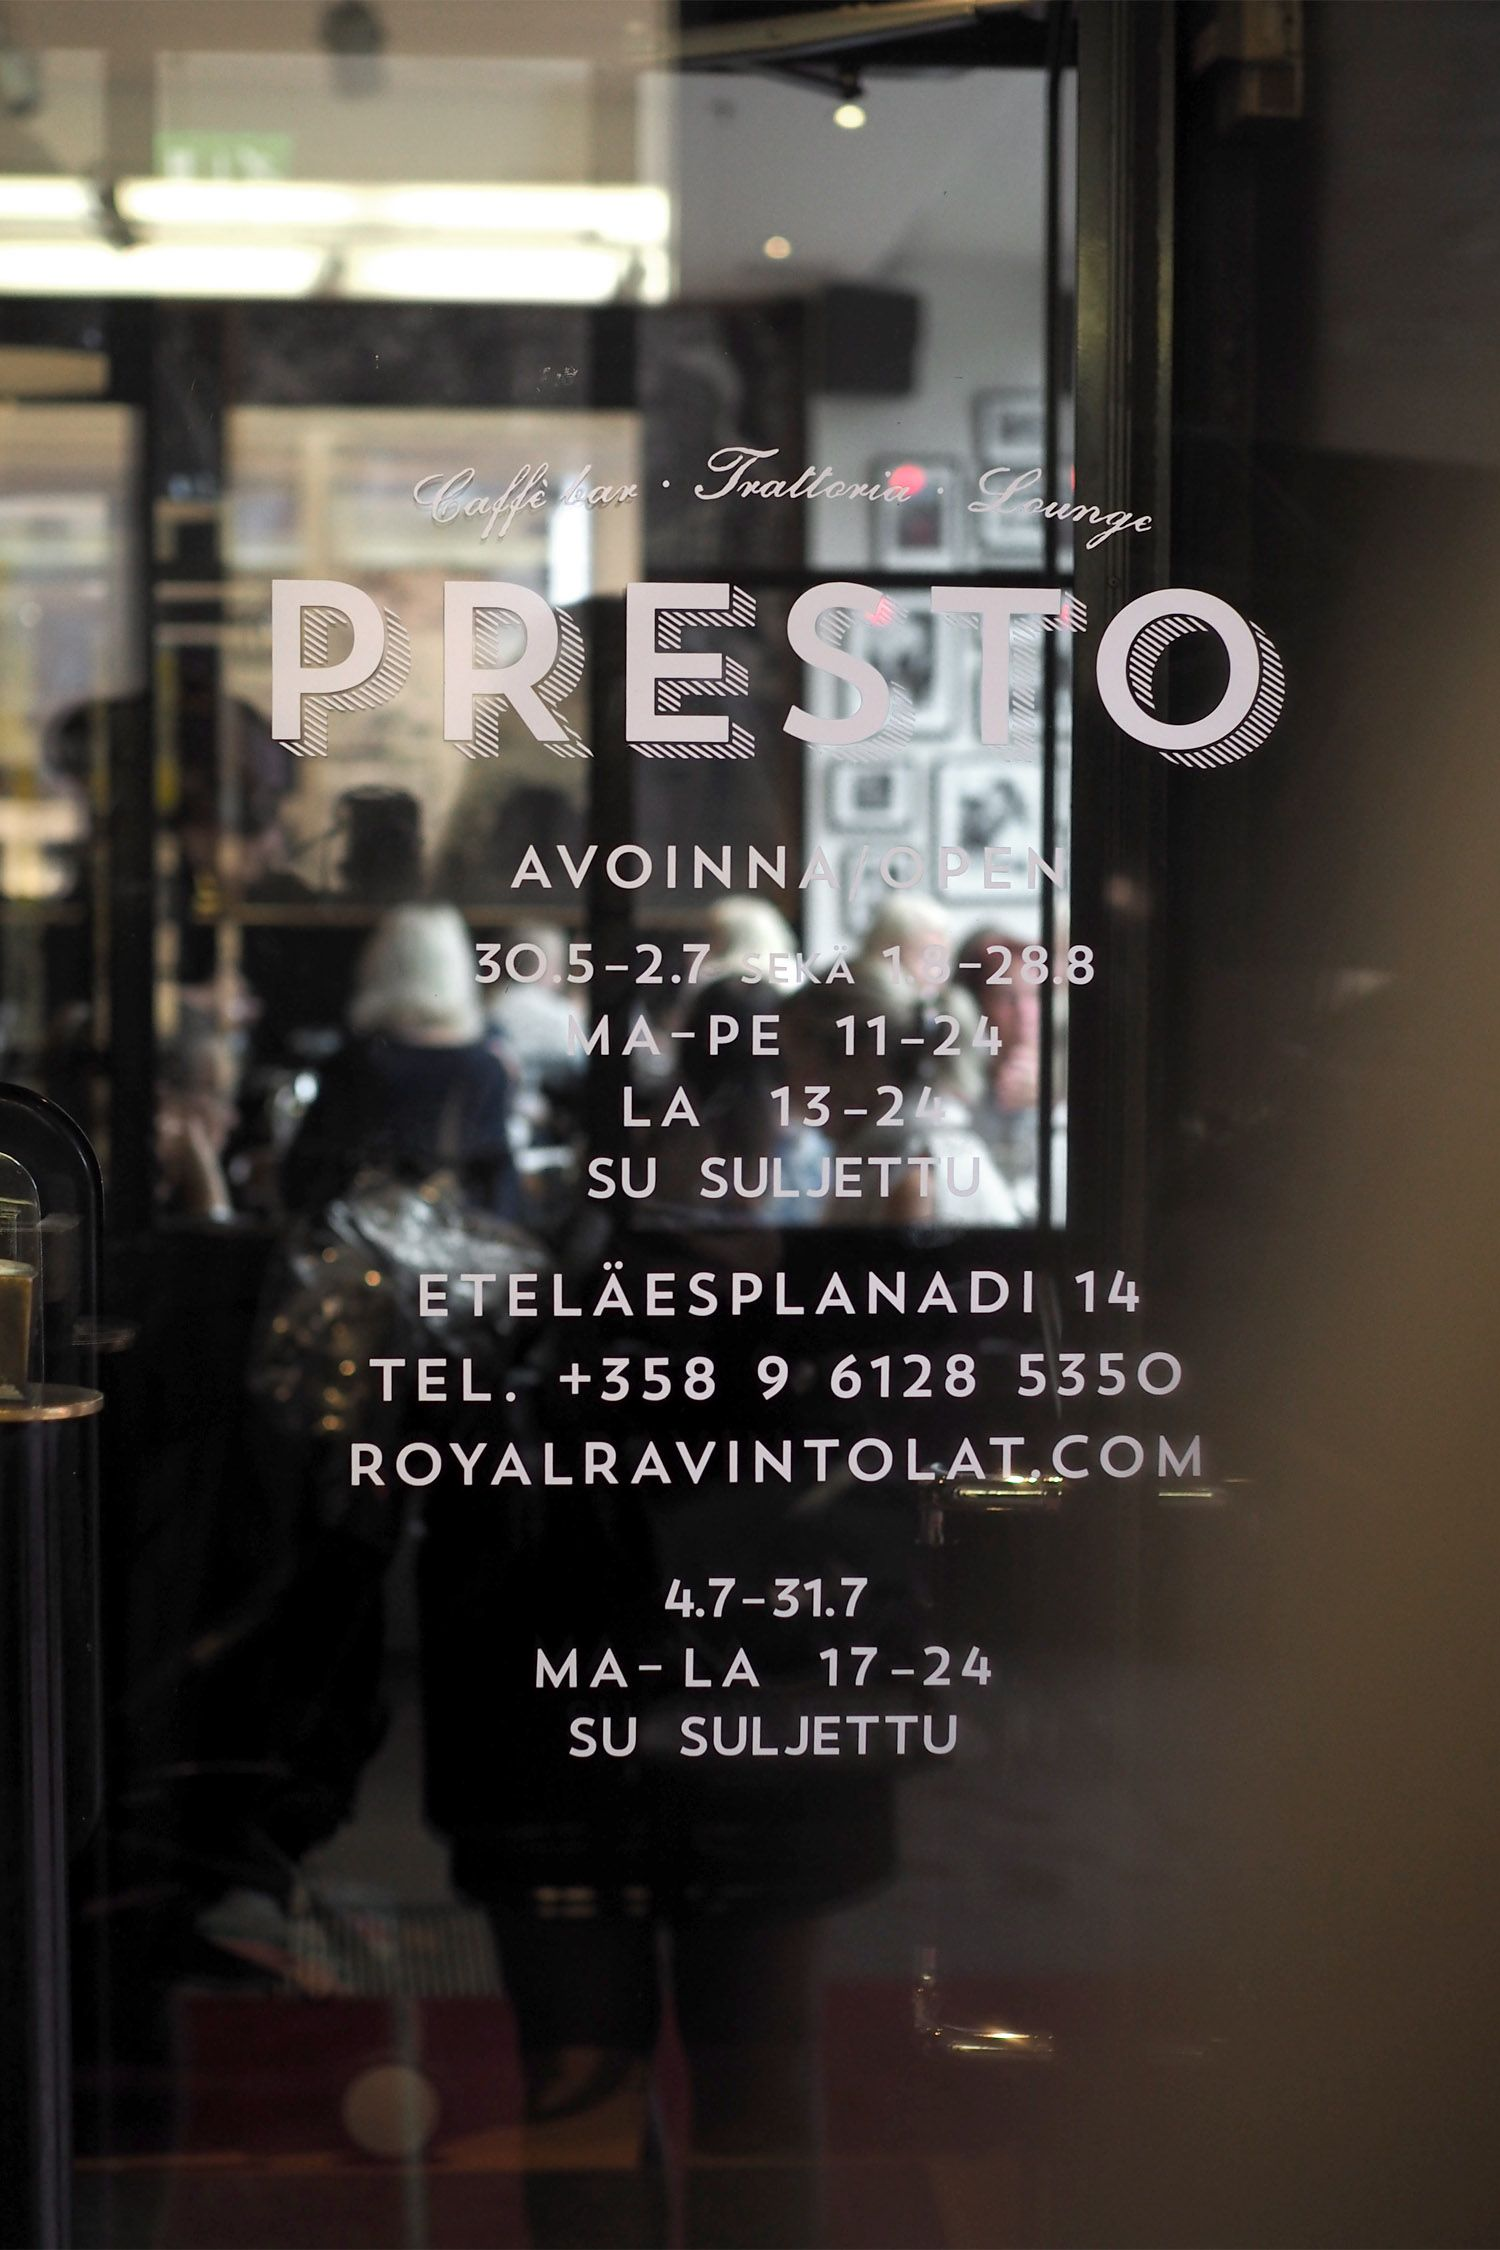 Char and the city - a fall day in the city of Helsinki, Finland - dinner at Presto restaurant - read more on the blog: http://www.idealista.fi/charandthecity/2016/08/22/presto #fall #autumn #dinner #helsinki #presto #restaurant